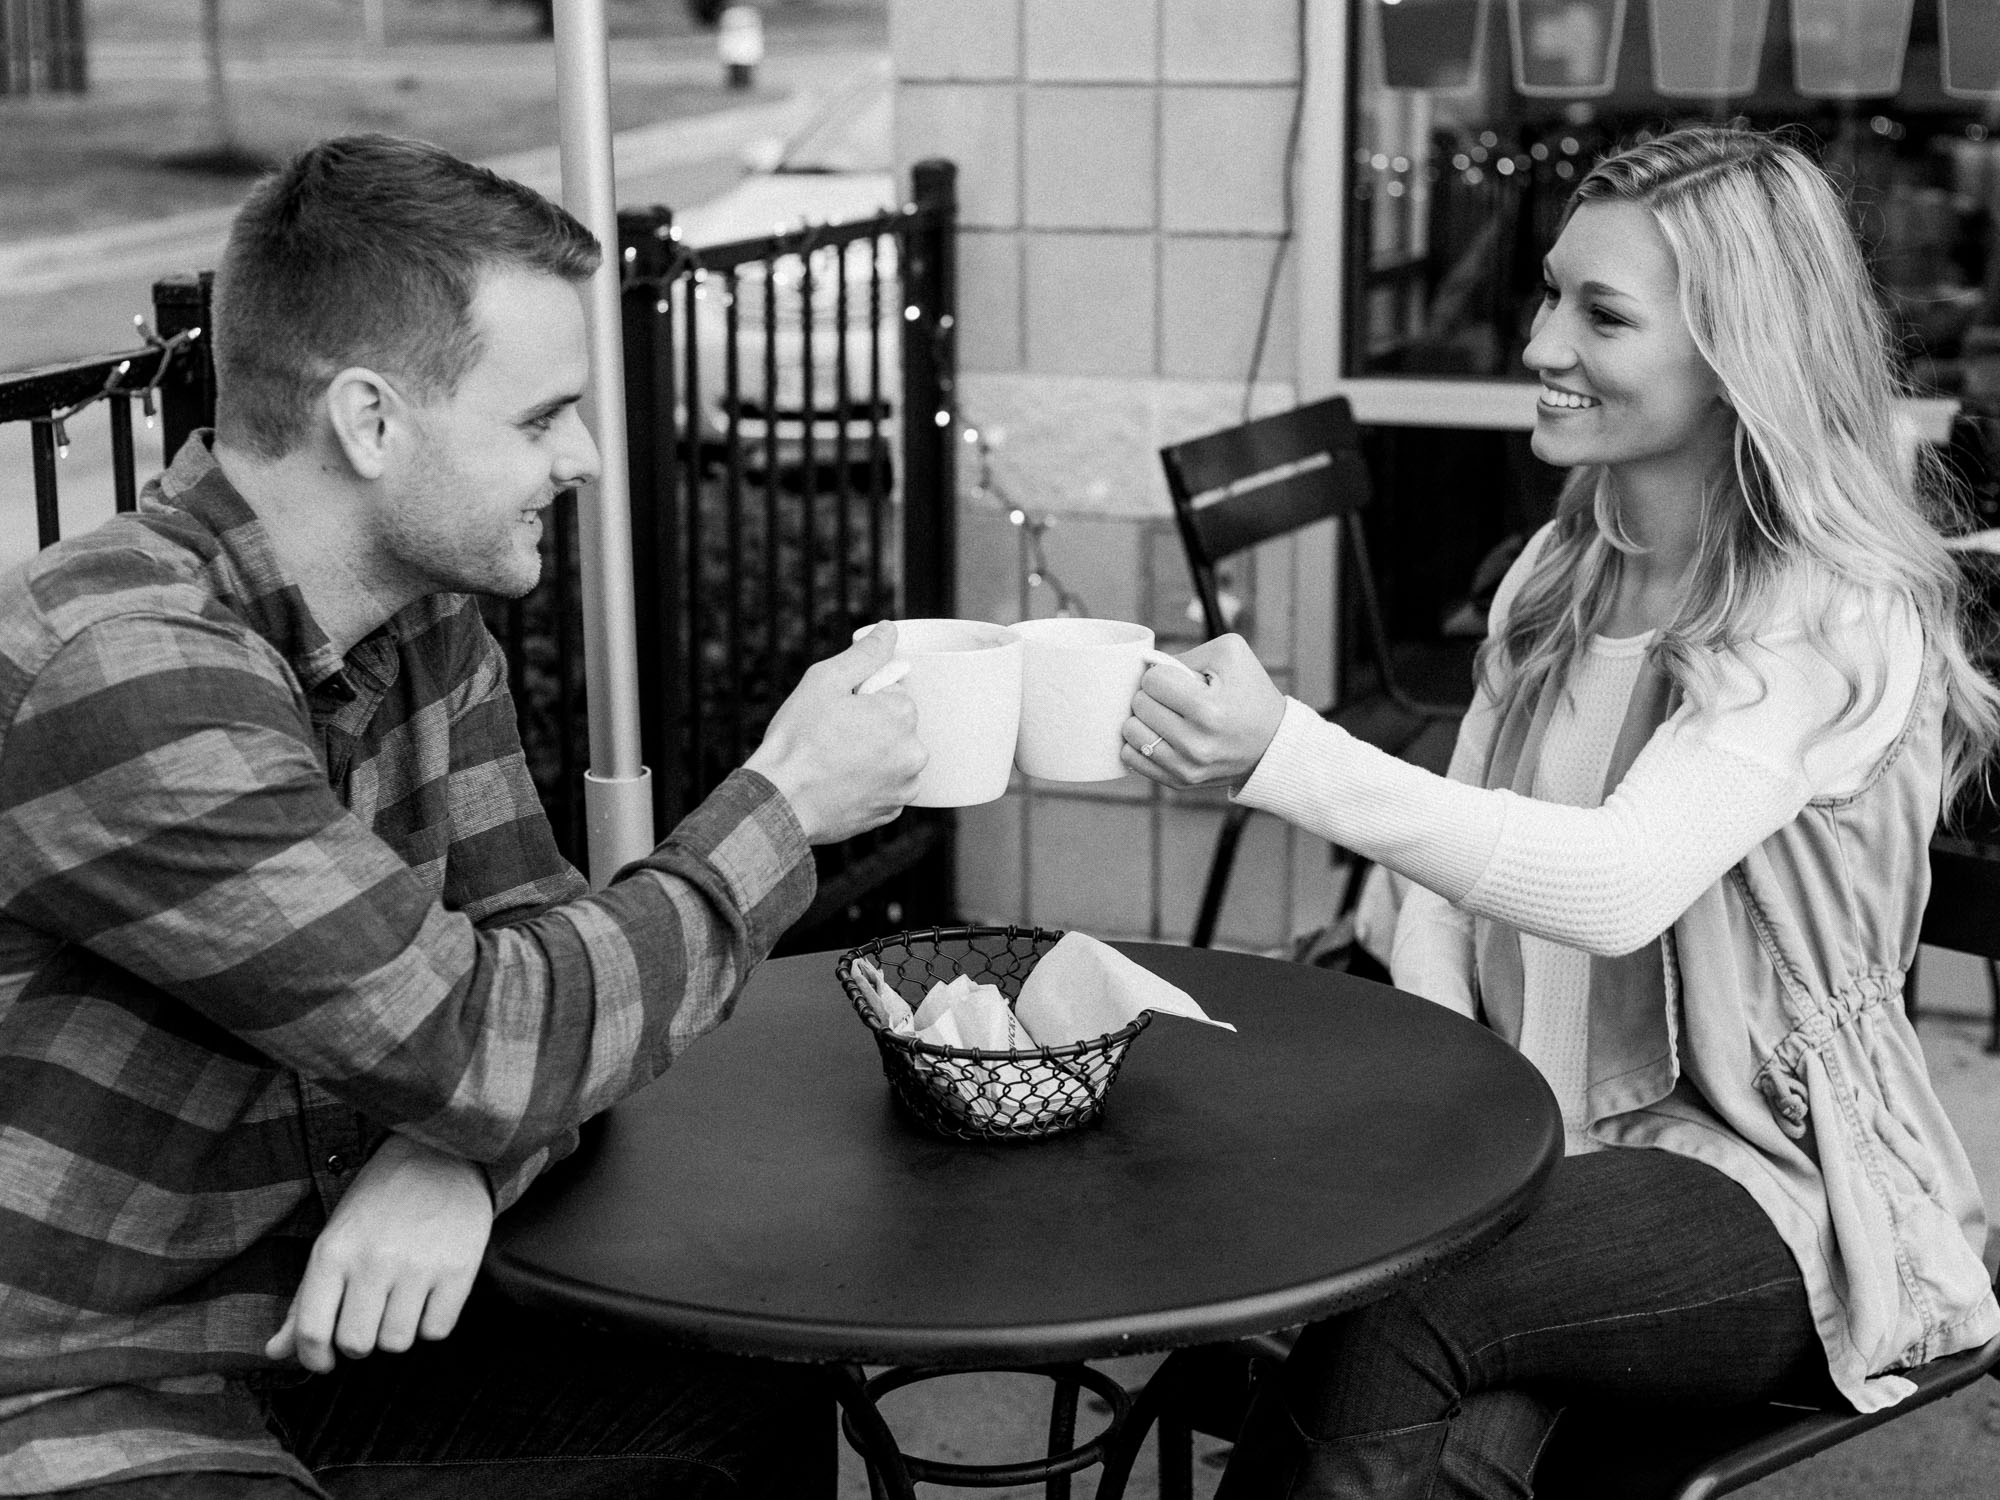 Starbucks Engagement Session in Wooster Ohio by Cleveland Wedding Photographer Matt Erickson Photography